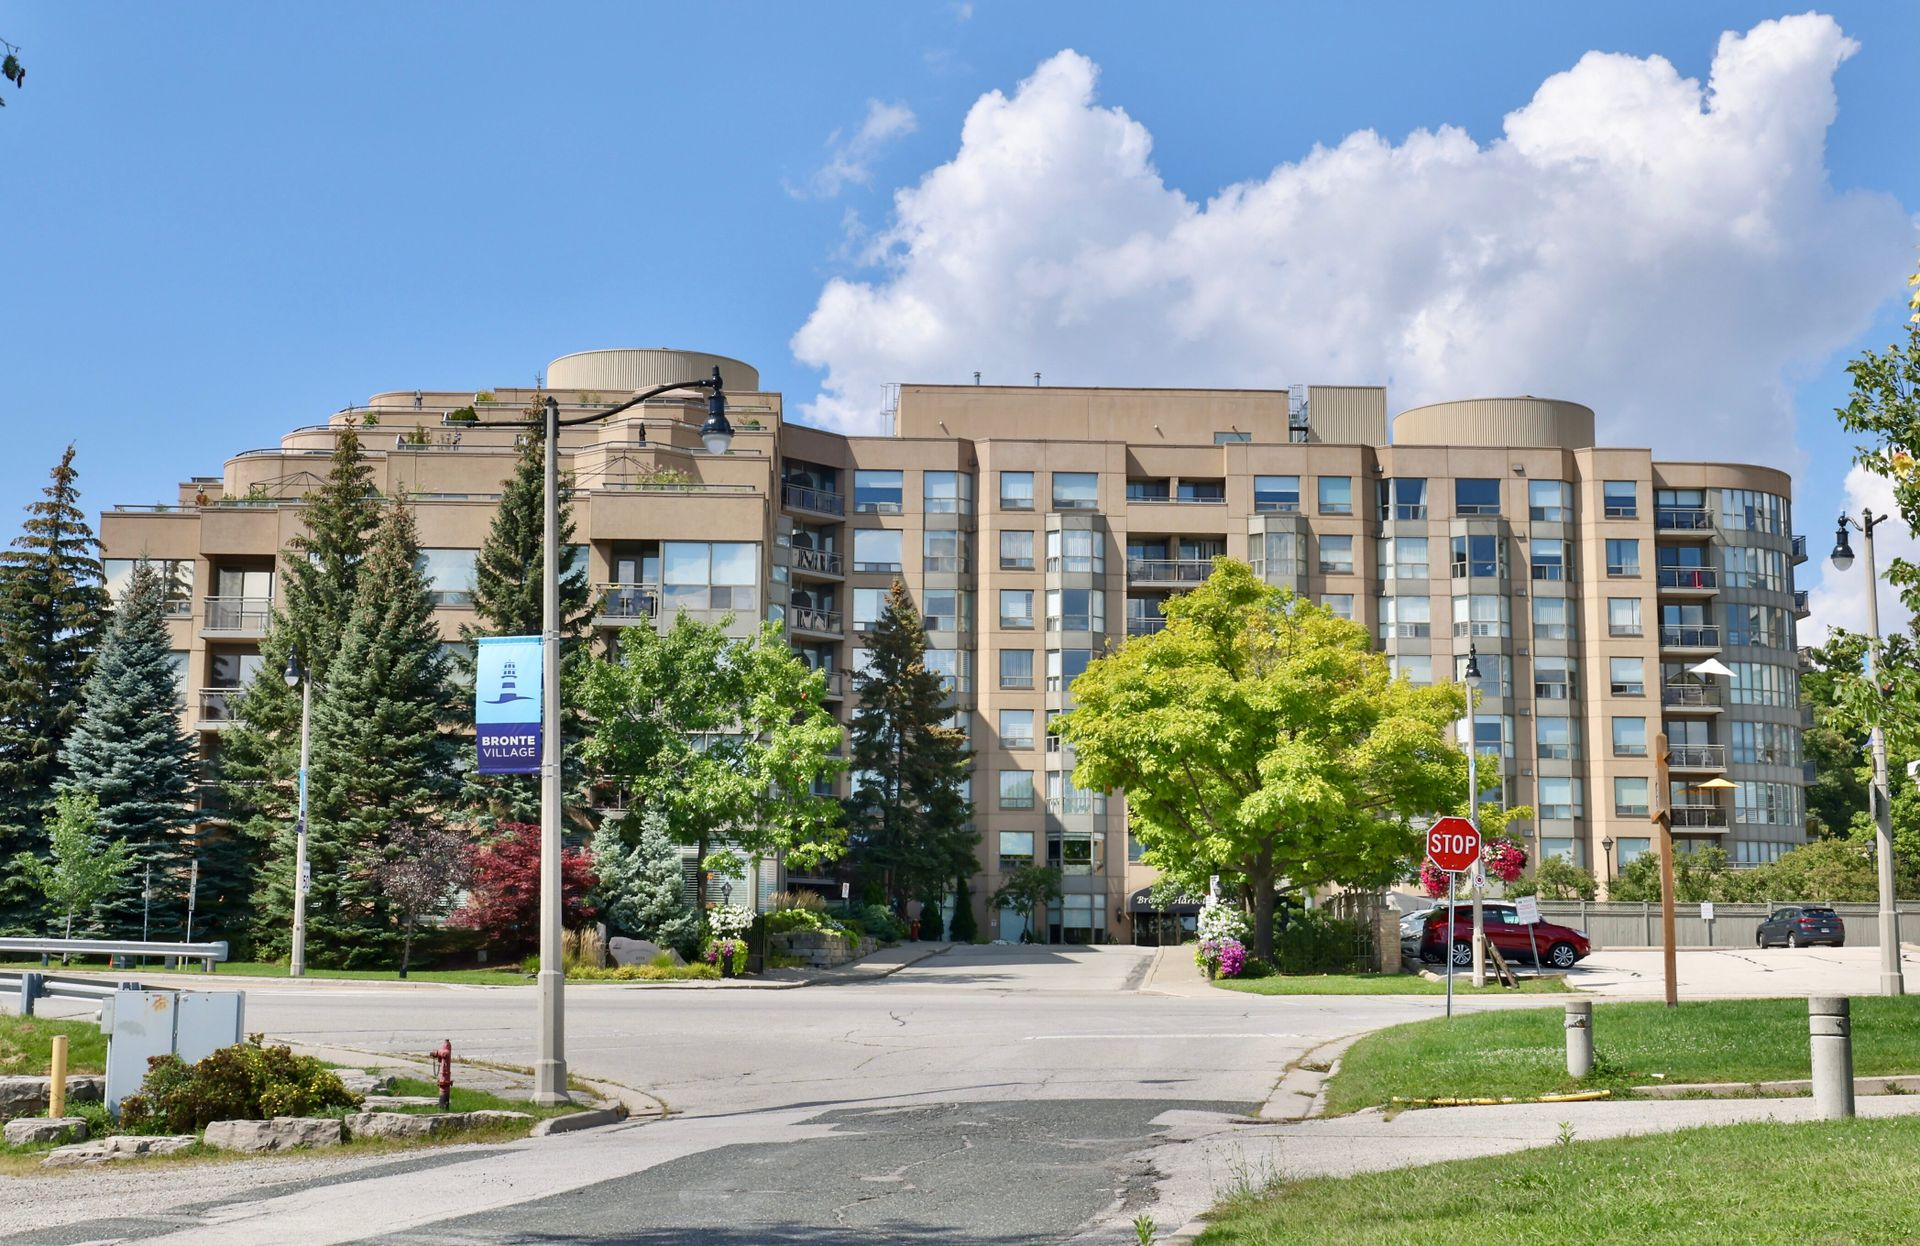 at 403 - 2511 Lakeshore Road West, Bronte West, Oakville